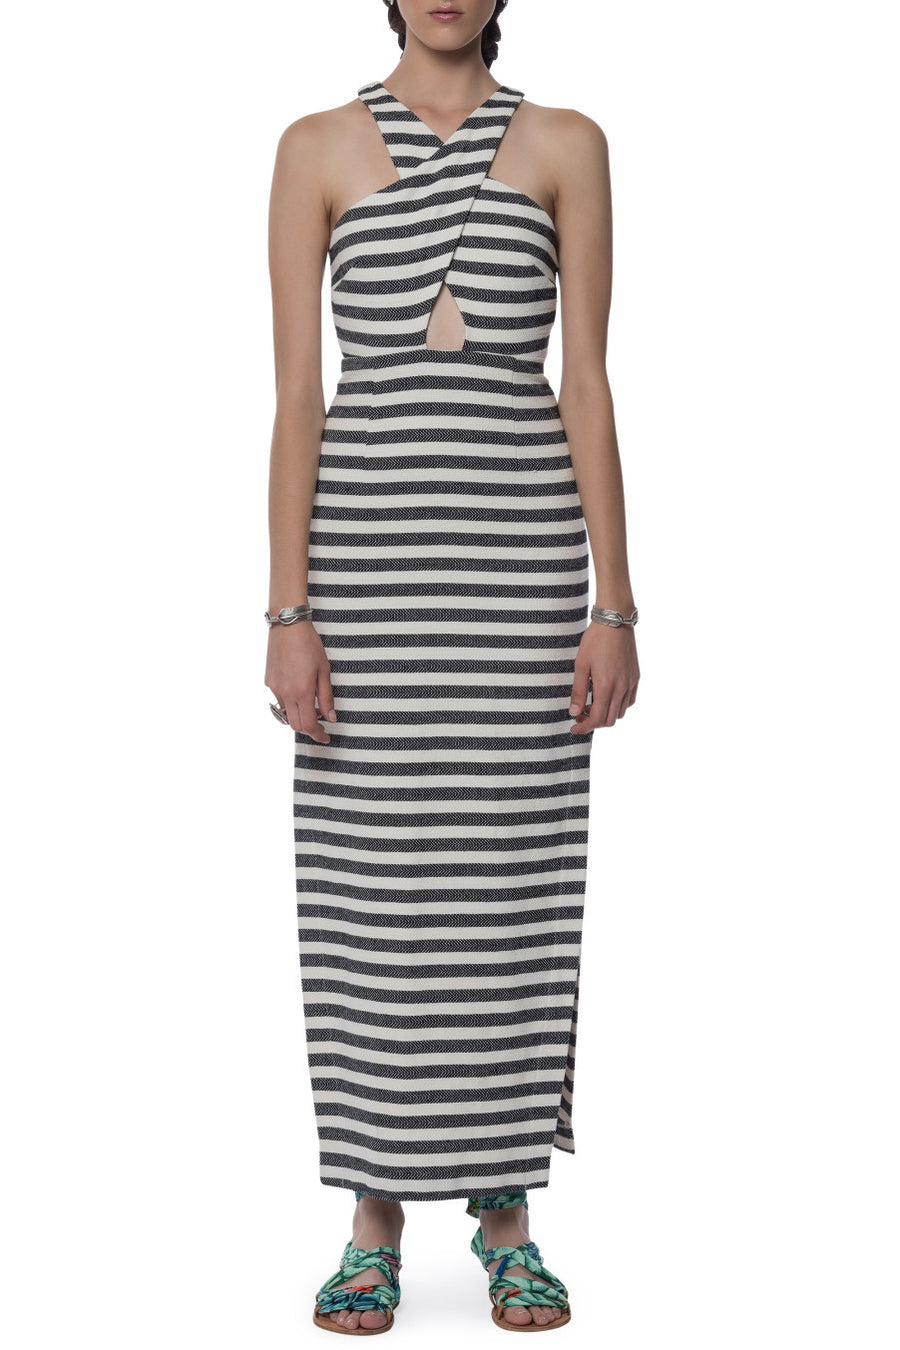 Mara Hoffman Stripe Cross Front Dress Black Cream - Call Me The Breeze - 3